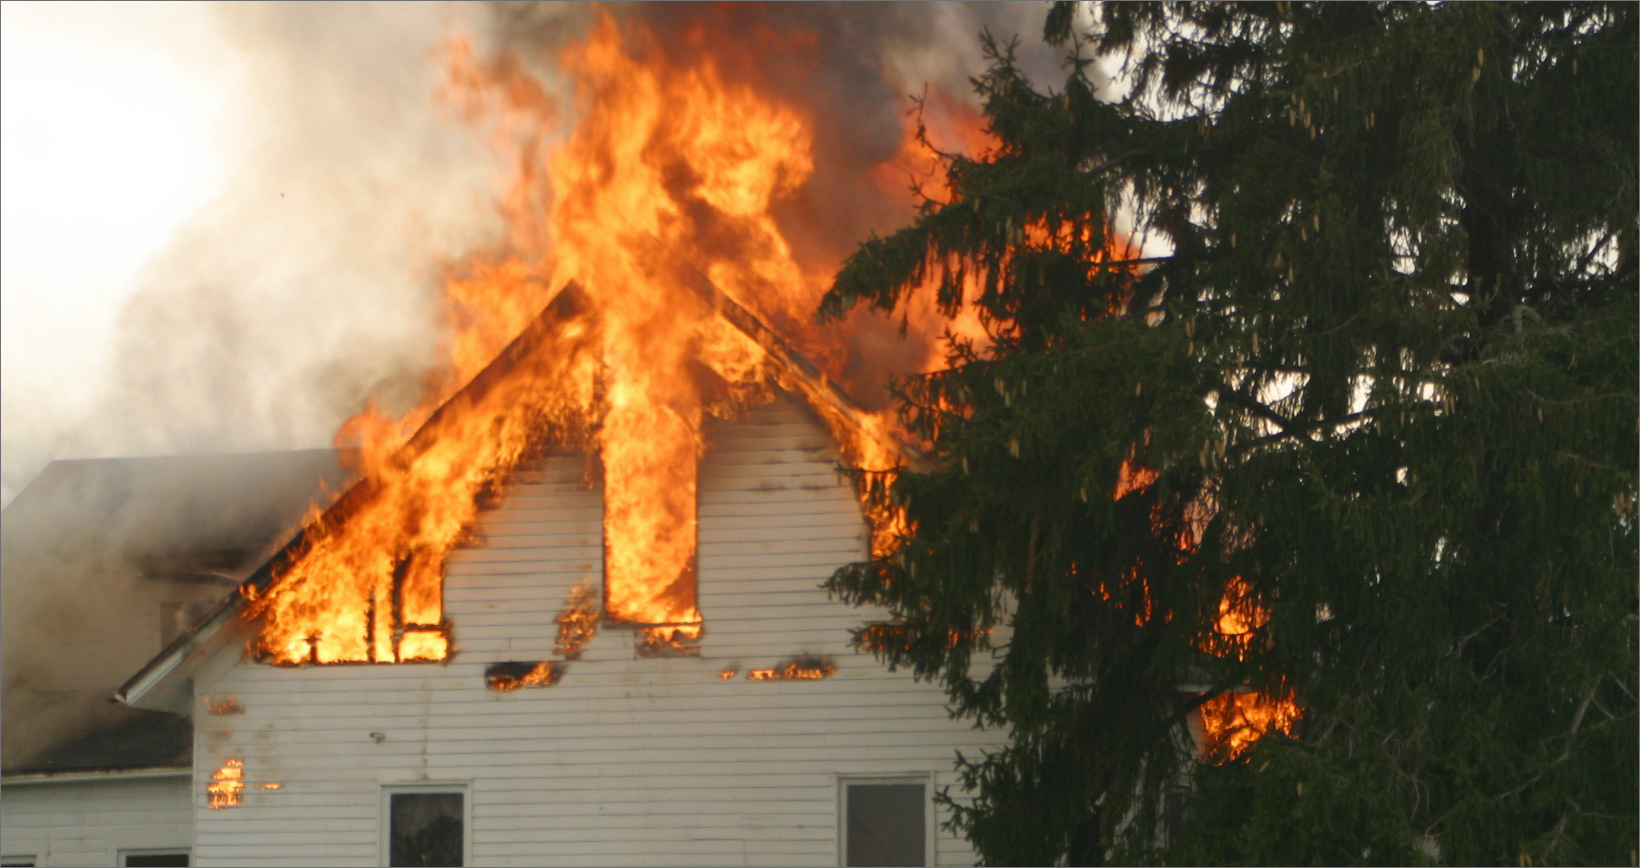 house on fire that will result in a fire damage claim